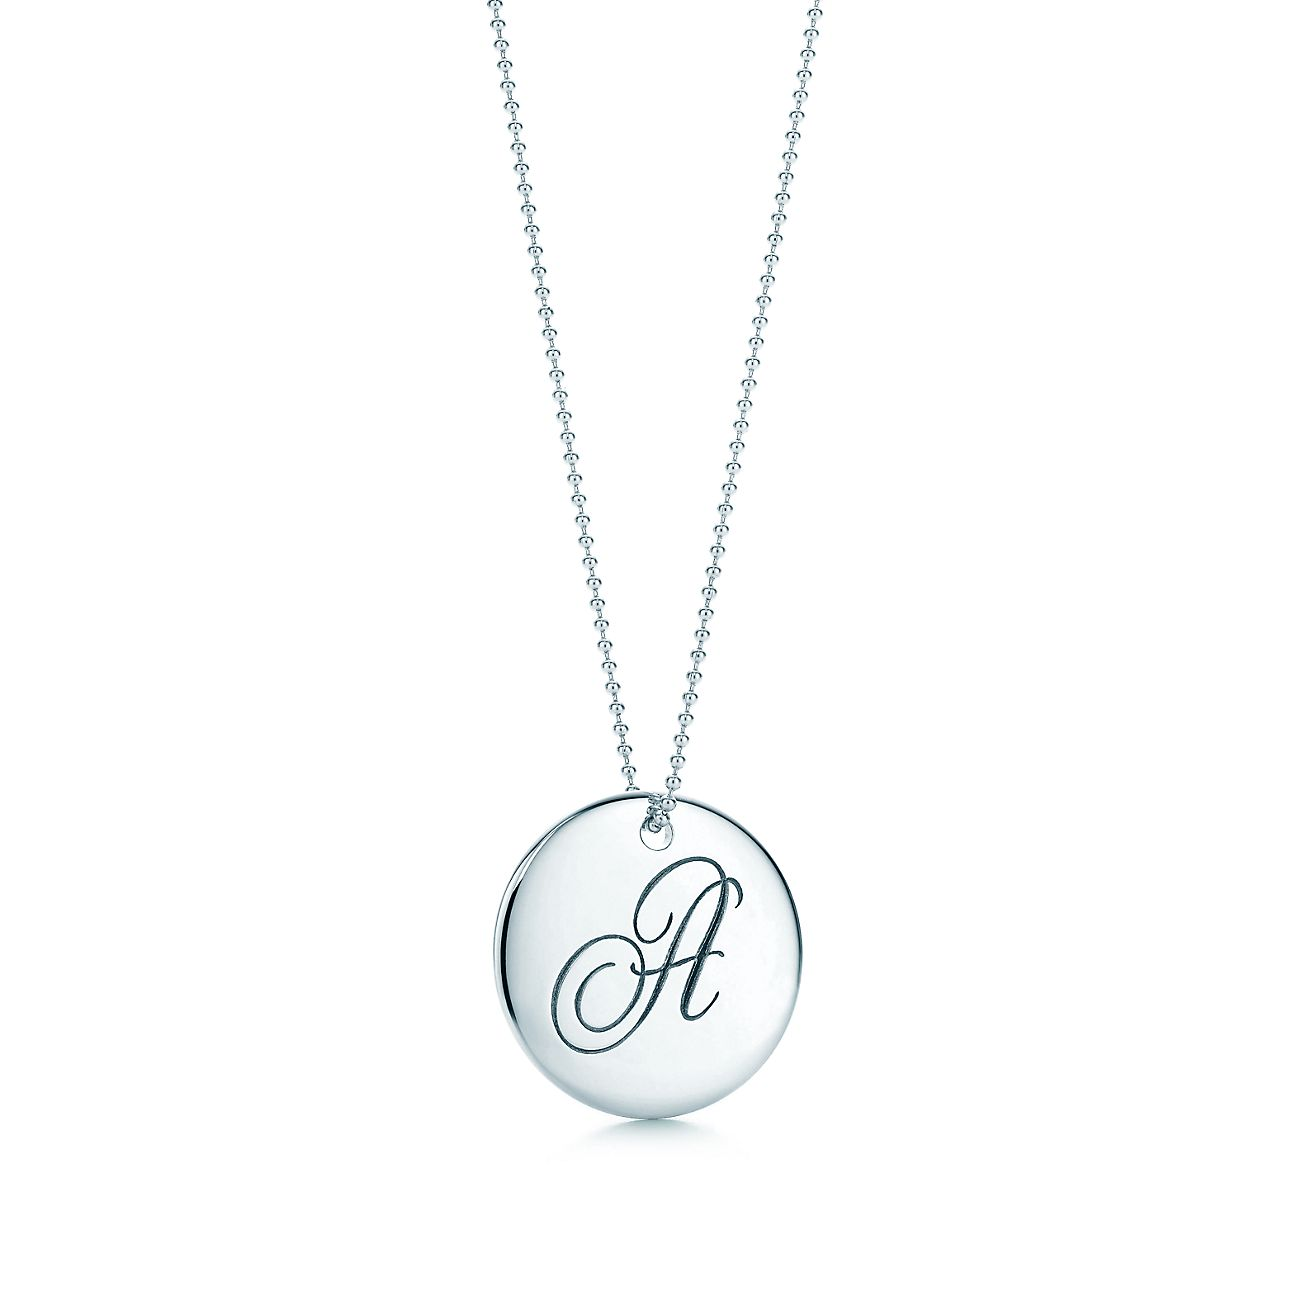 c44530e26 ... tiffany notes letter a round pendant in sterling silver. tiffany co. ...